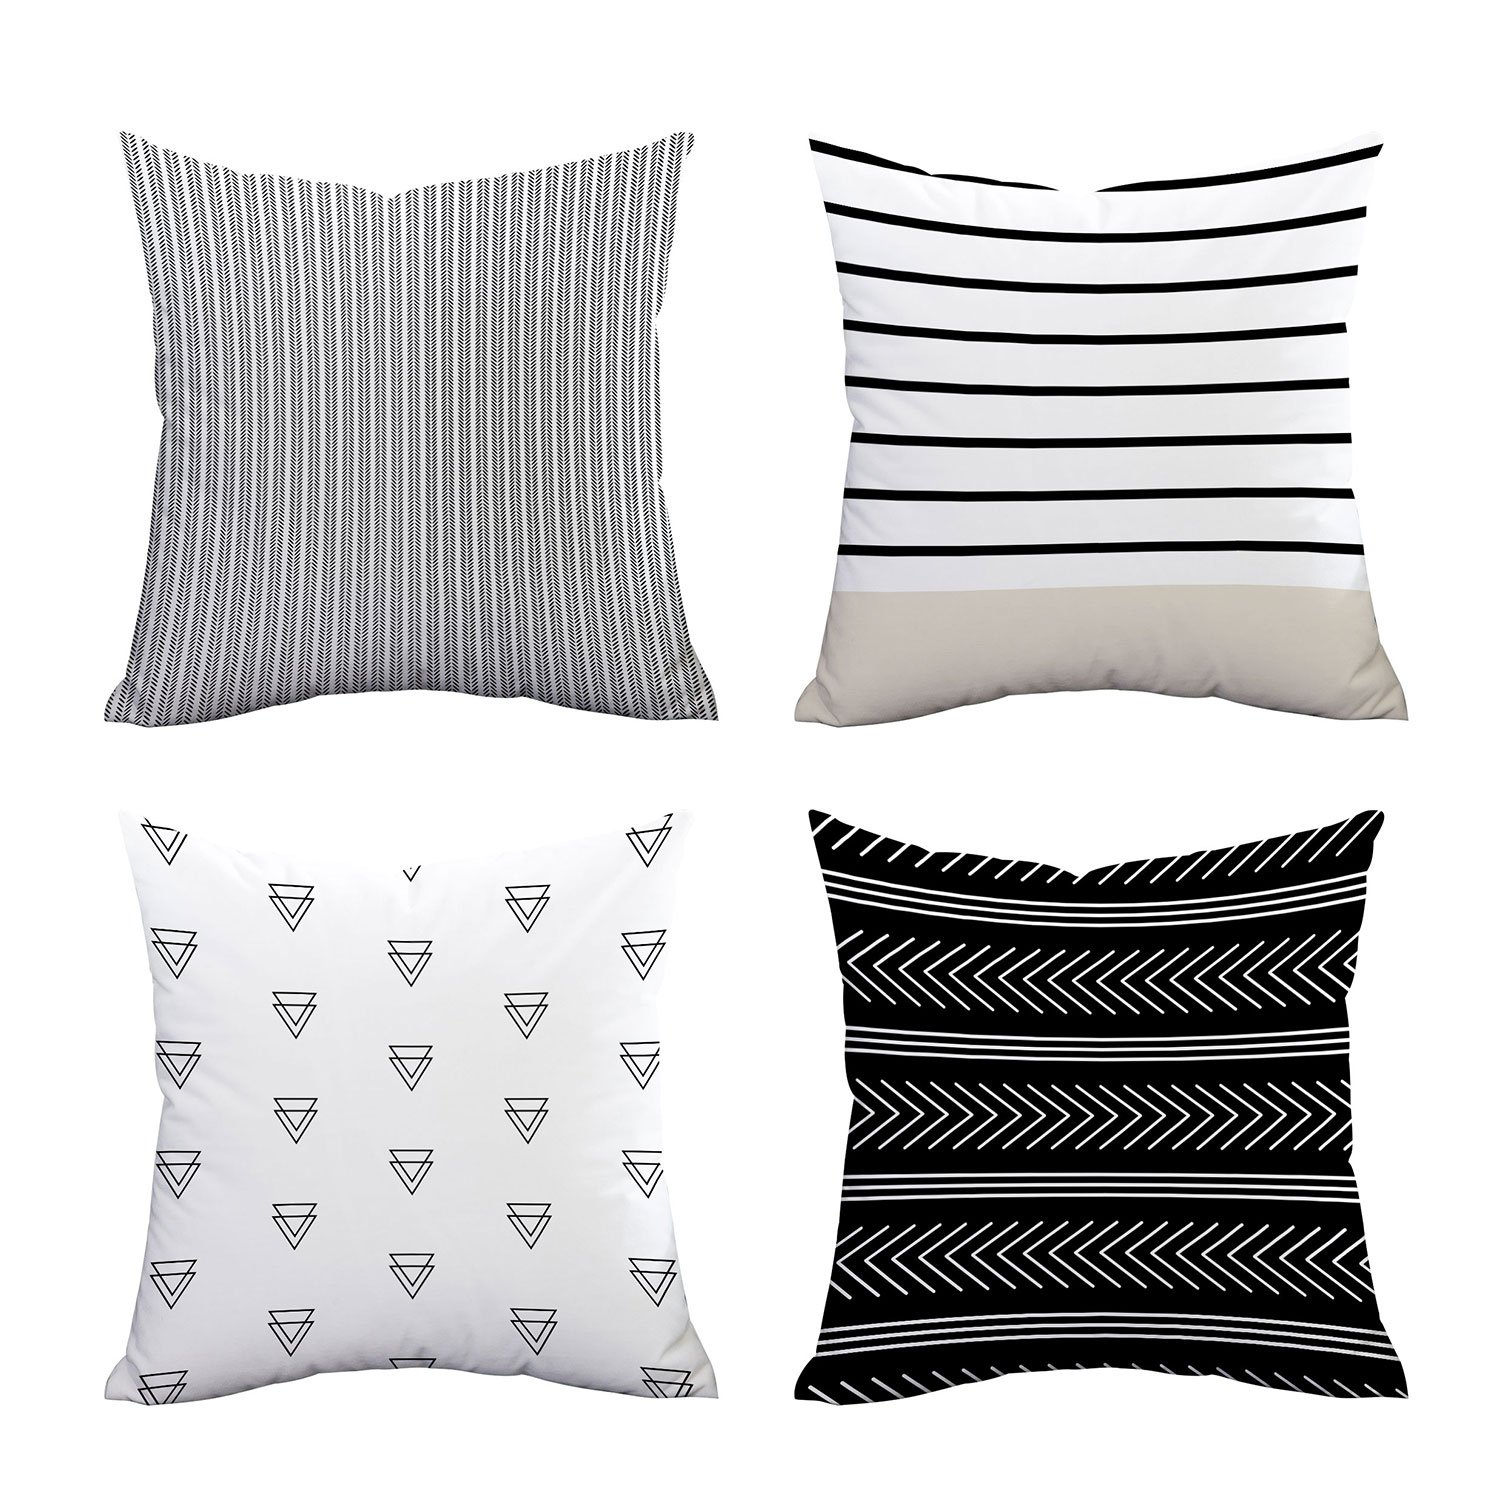 Set of 4 Pillow Covers Stripe Pattern Throw Pillow Case Daily Decorations Sofa Throw Pillow Case Cushion Covers Zippered Pillowcase 18'' x 18'' by Icejazz